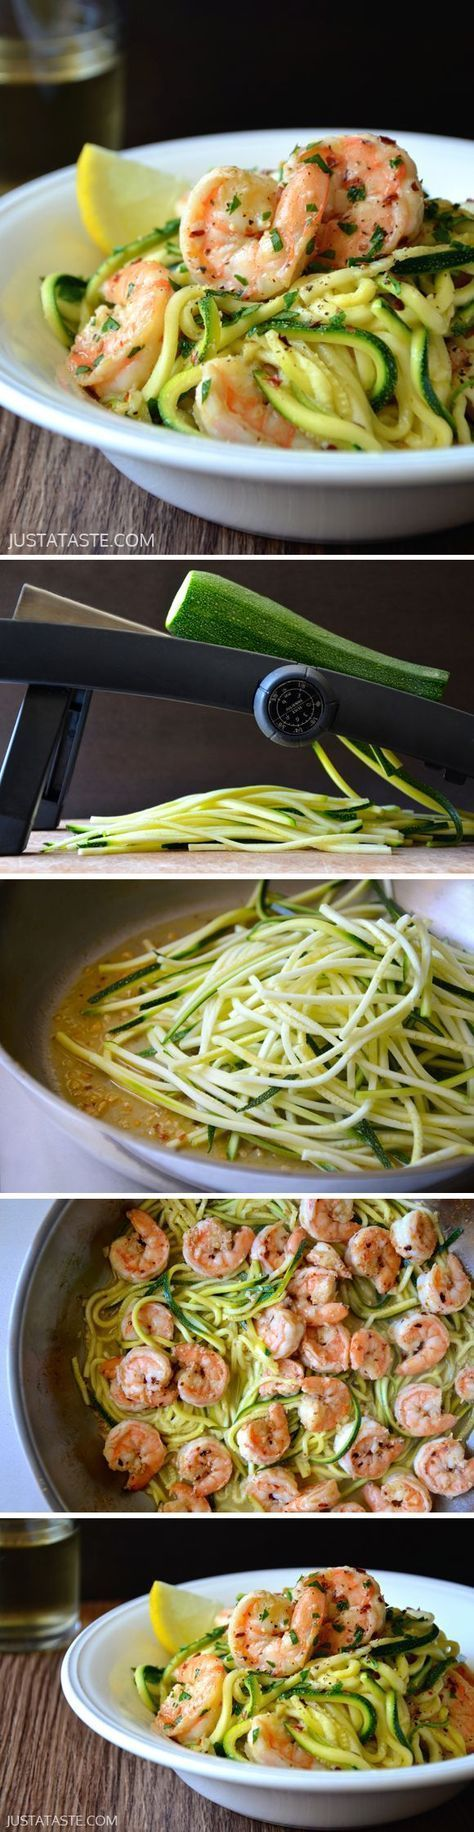 Shrimp Scampi with Zucchini Noodles // 21 Day Fix // fitness // fitspo // workout // motivation // exercise // Meal Prep // diet // nutrition // Inspiration // fitfood // fitfam // clean eating // recipe // recipes